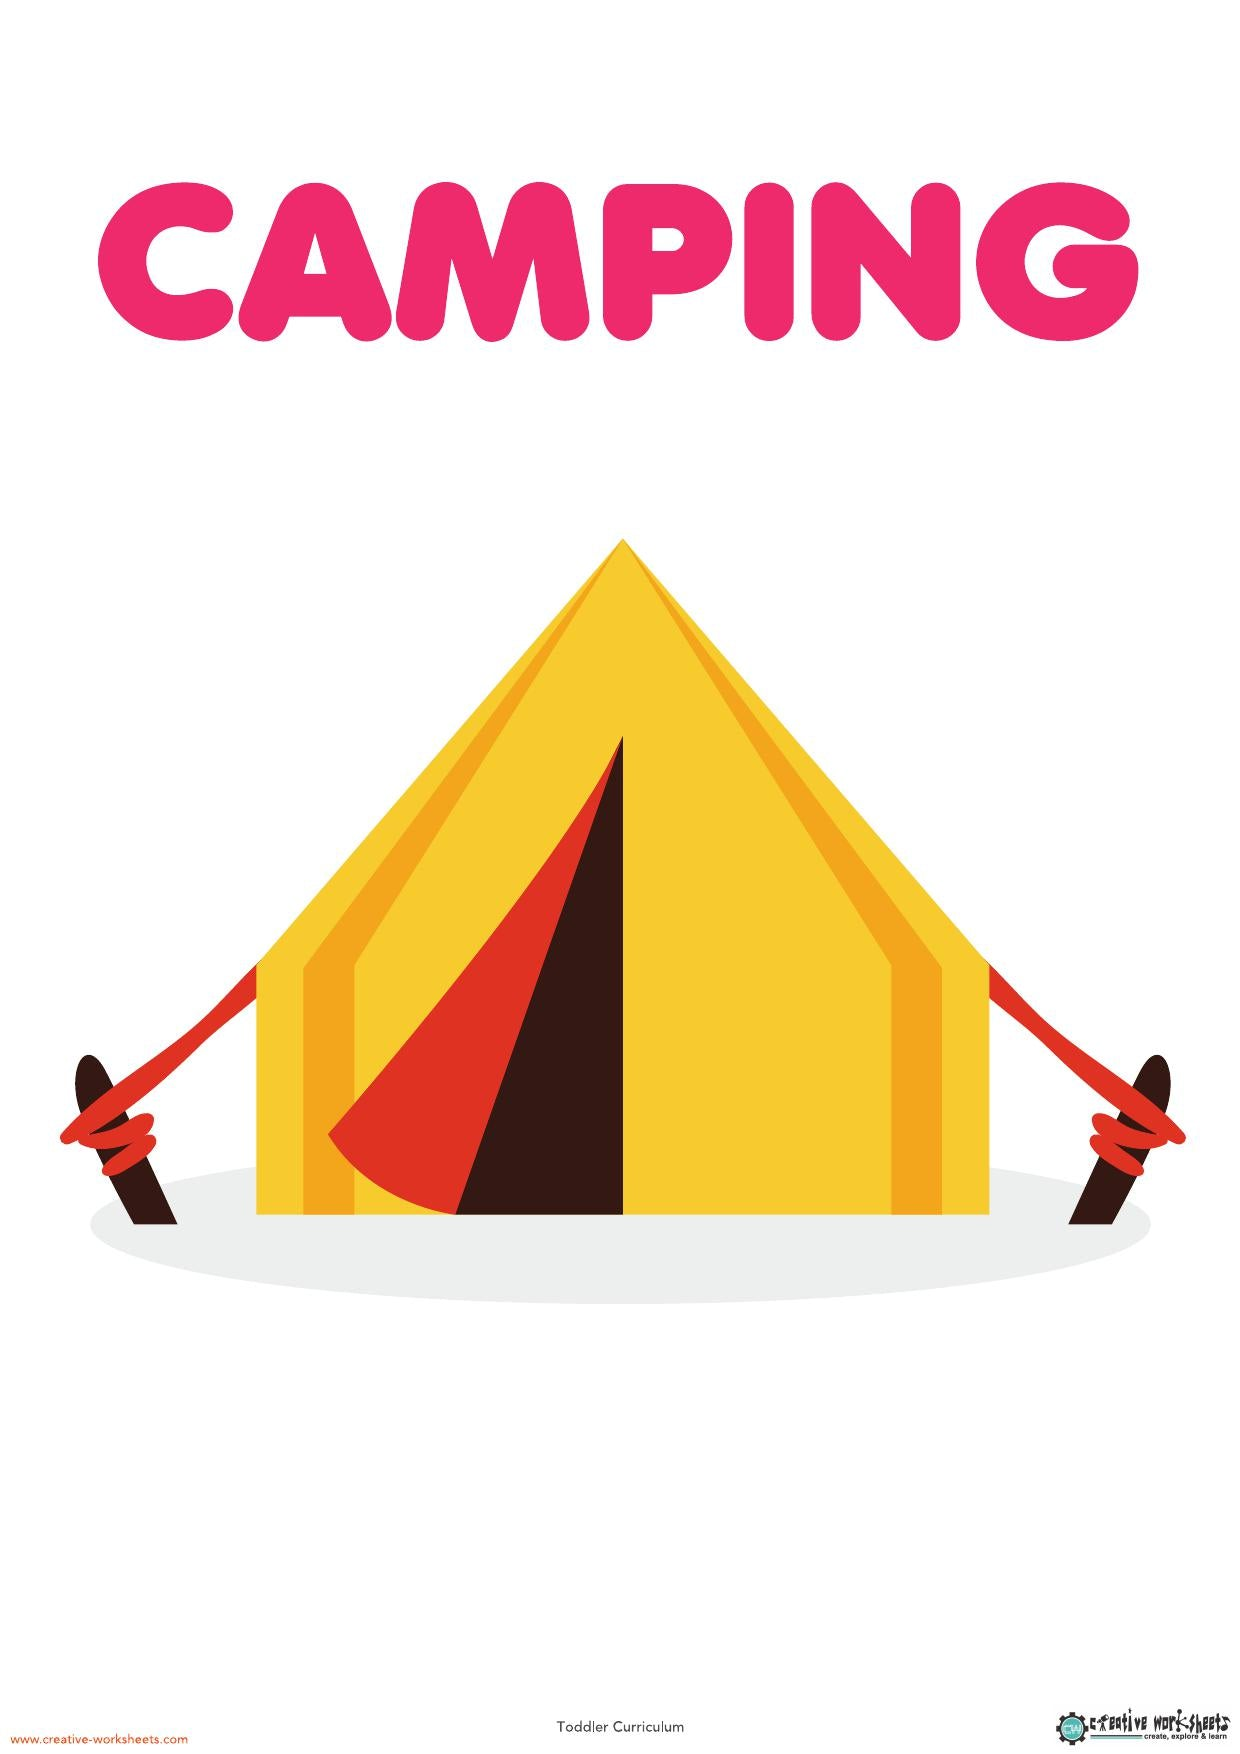 CAMPING UNIT - TODDLER CURRICULUM - CreativeWorksheets